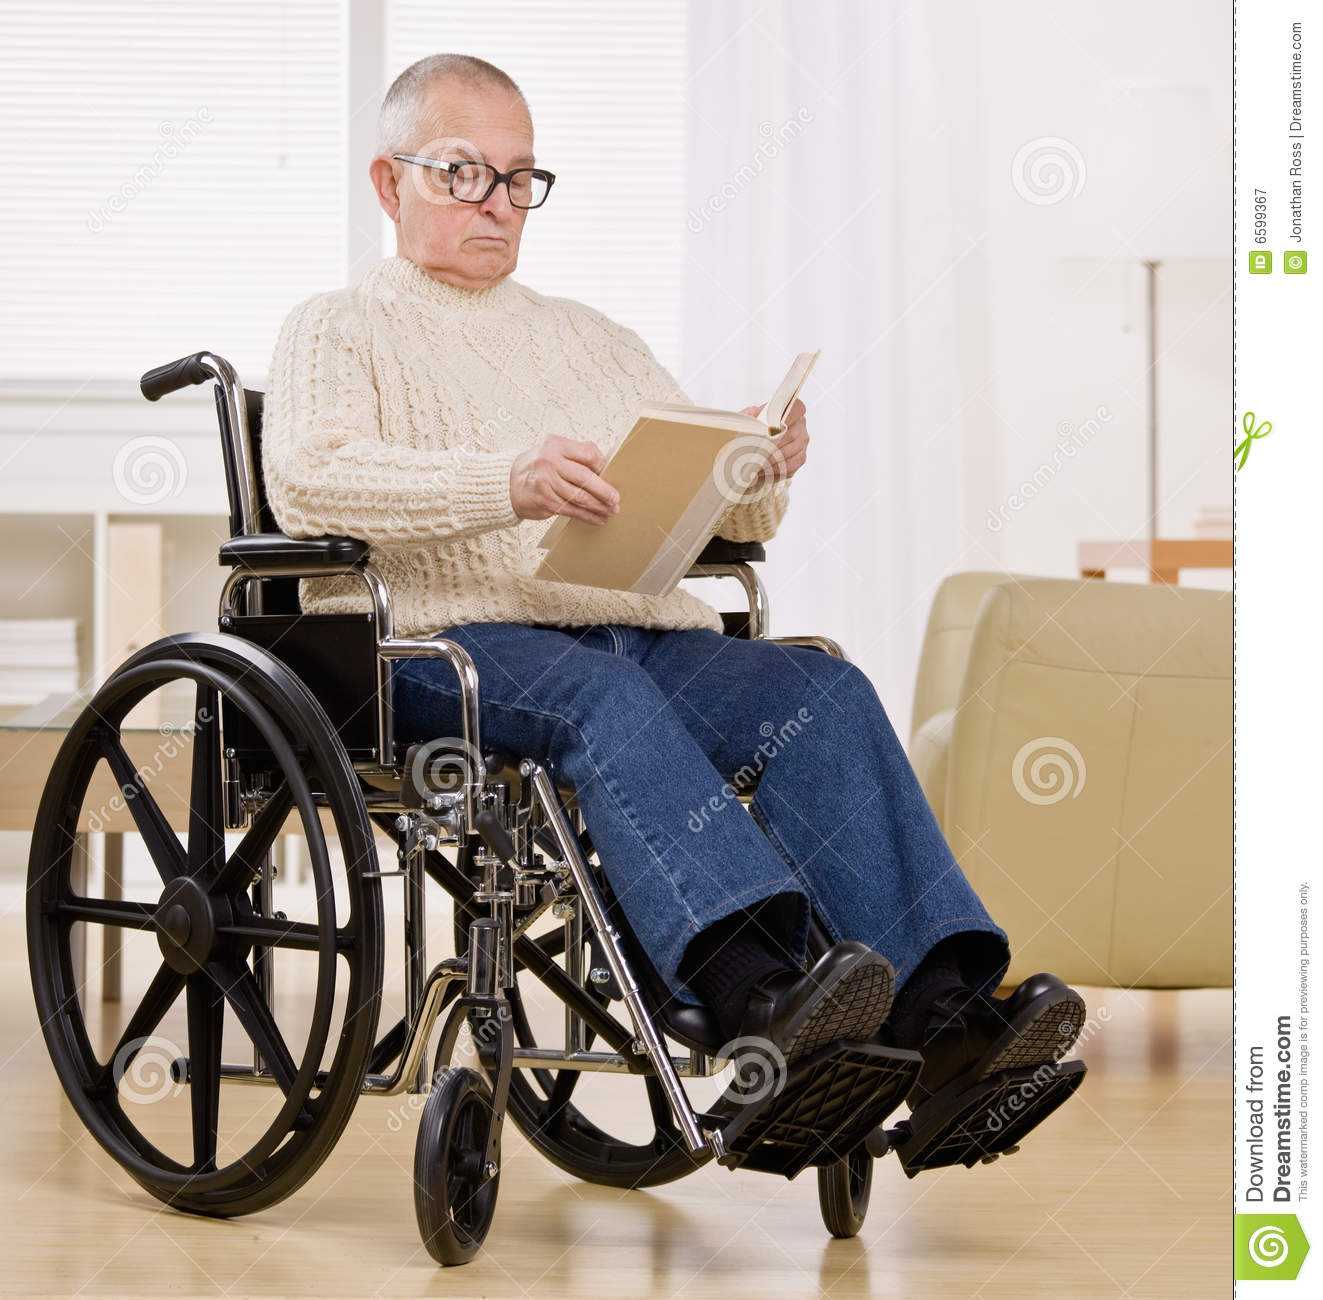 wheelchair man chairs folding outdoor disabled in royalty free stock photography